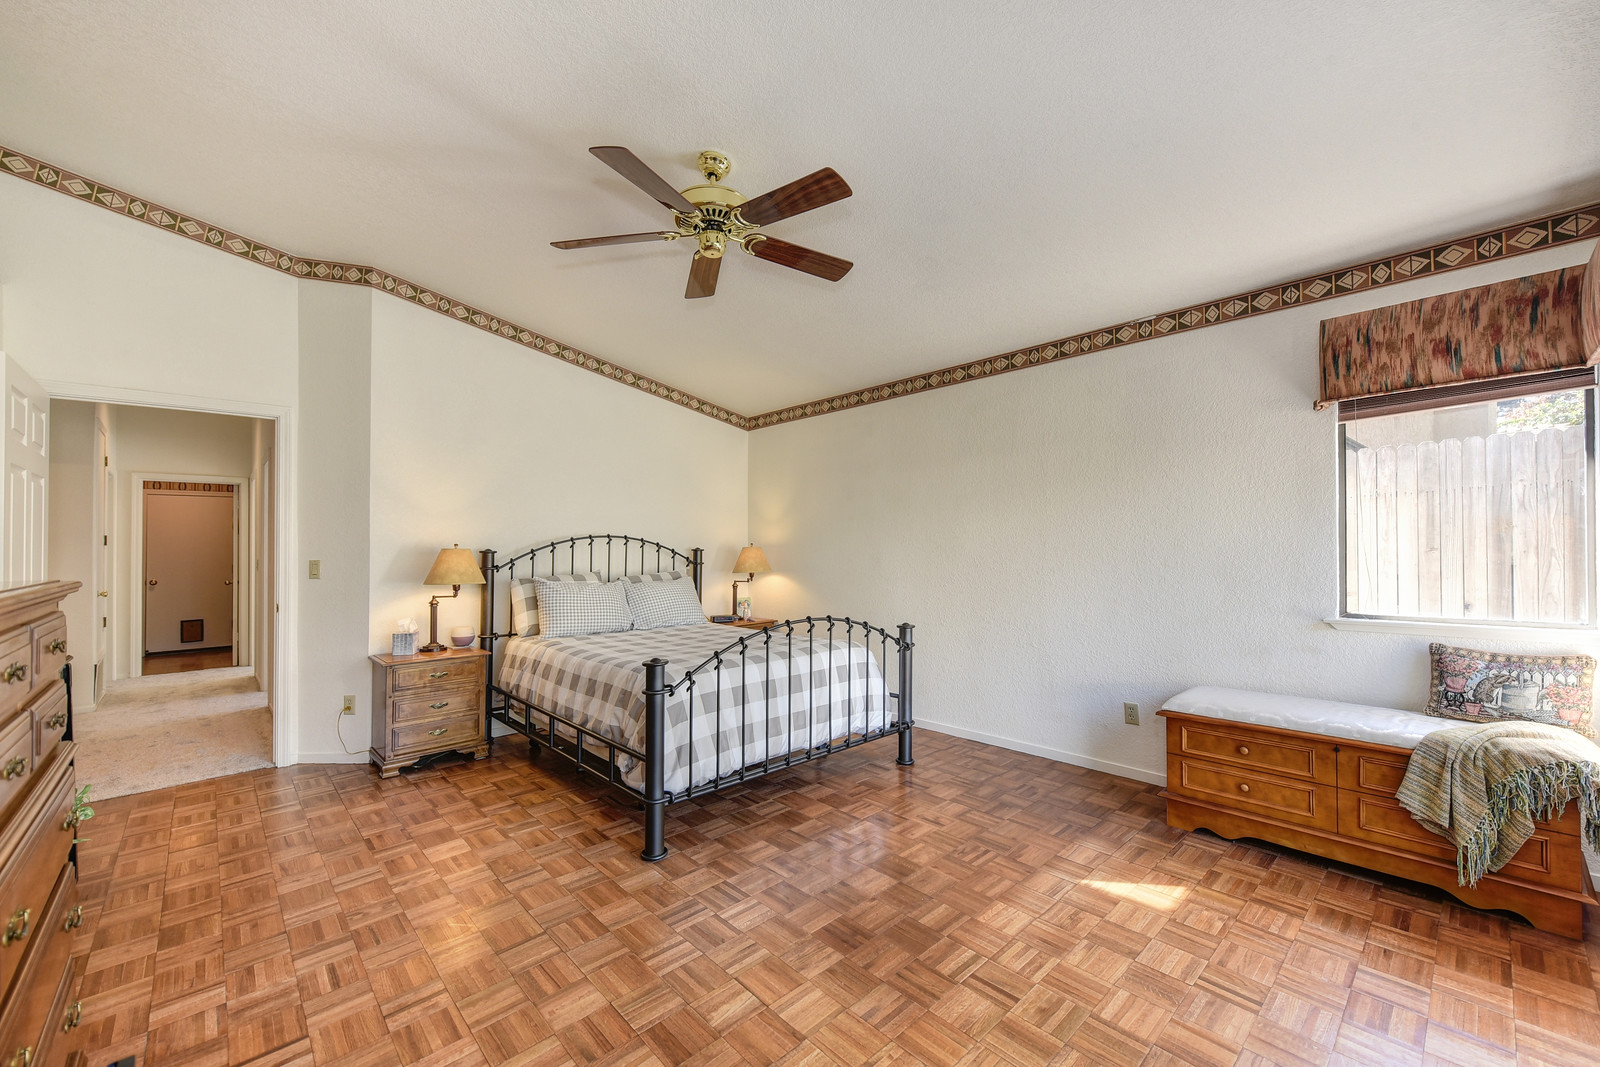 Elk Grove California home sold with multiple offers | 9158 Old Creek Rd master bedroom | Real Estate Agent in Elk Grove California